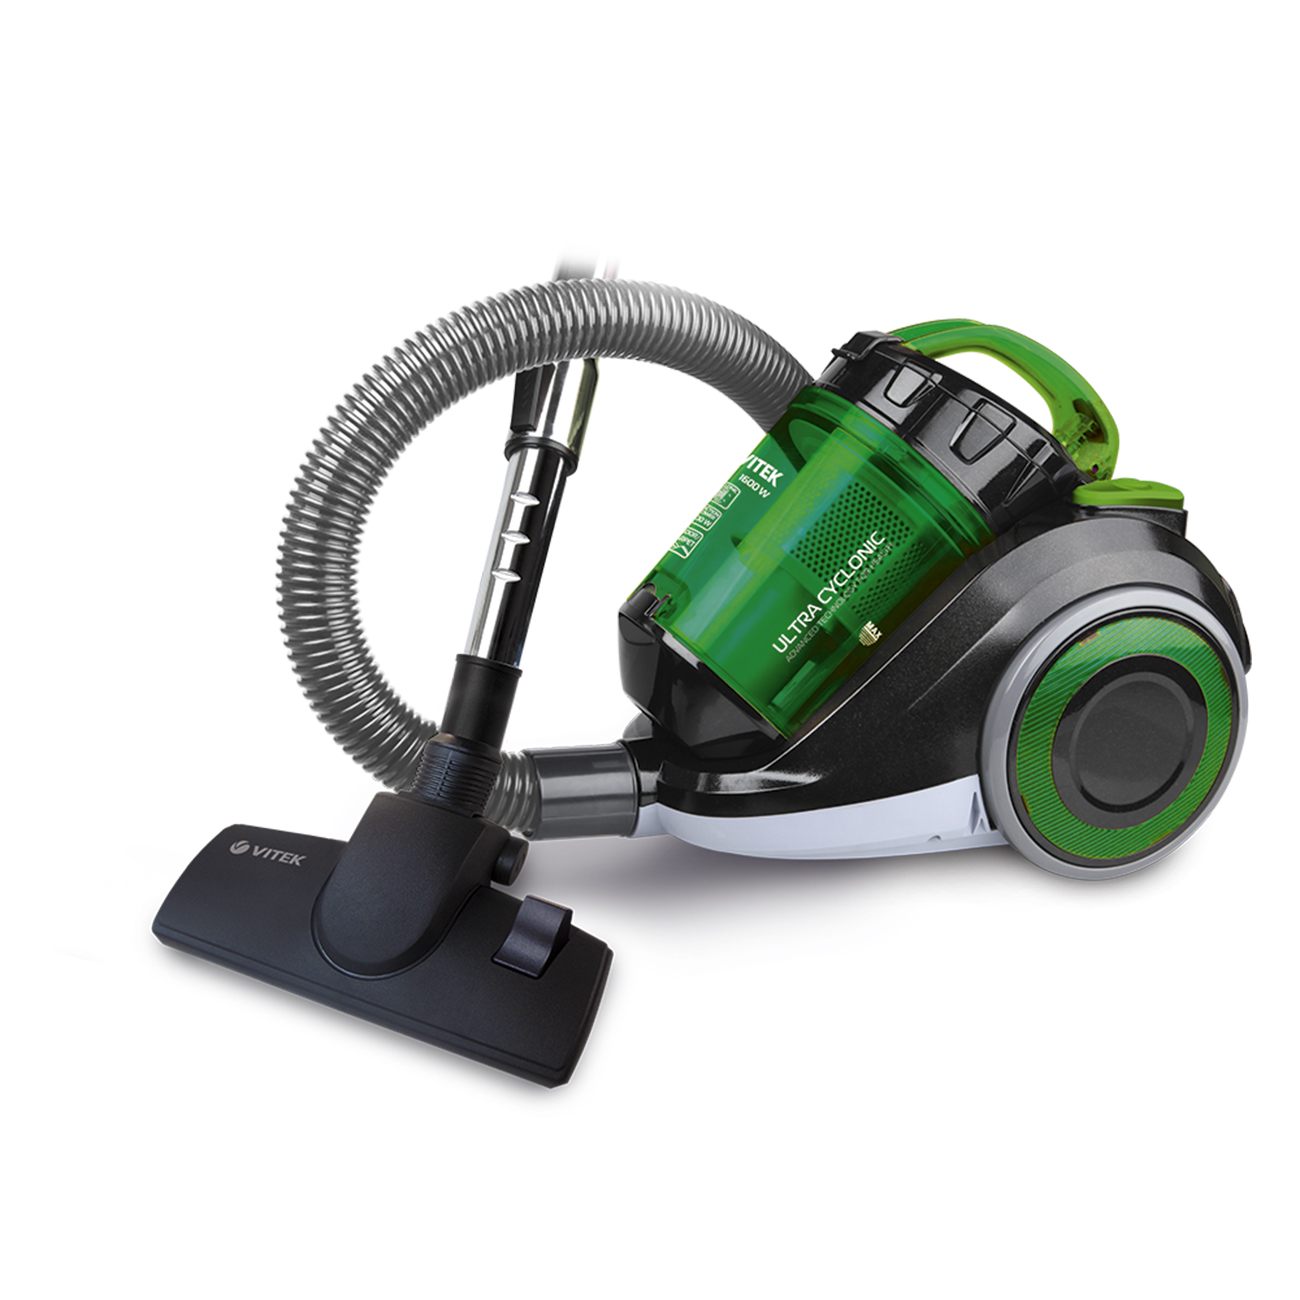 The electric vacuum cleaner Vitek VT-1815 G